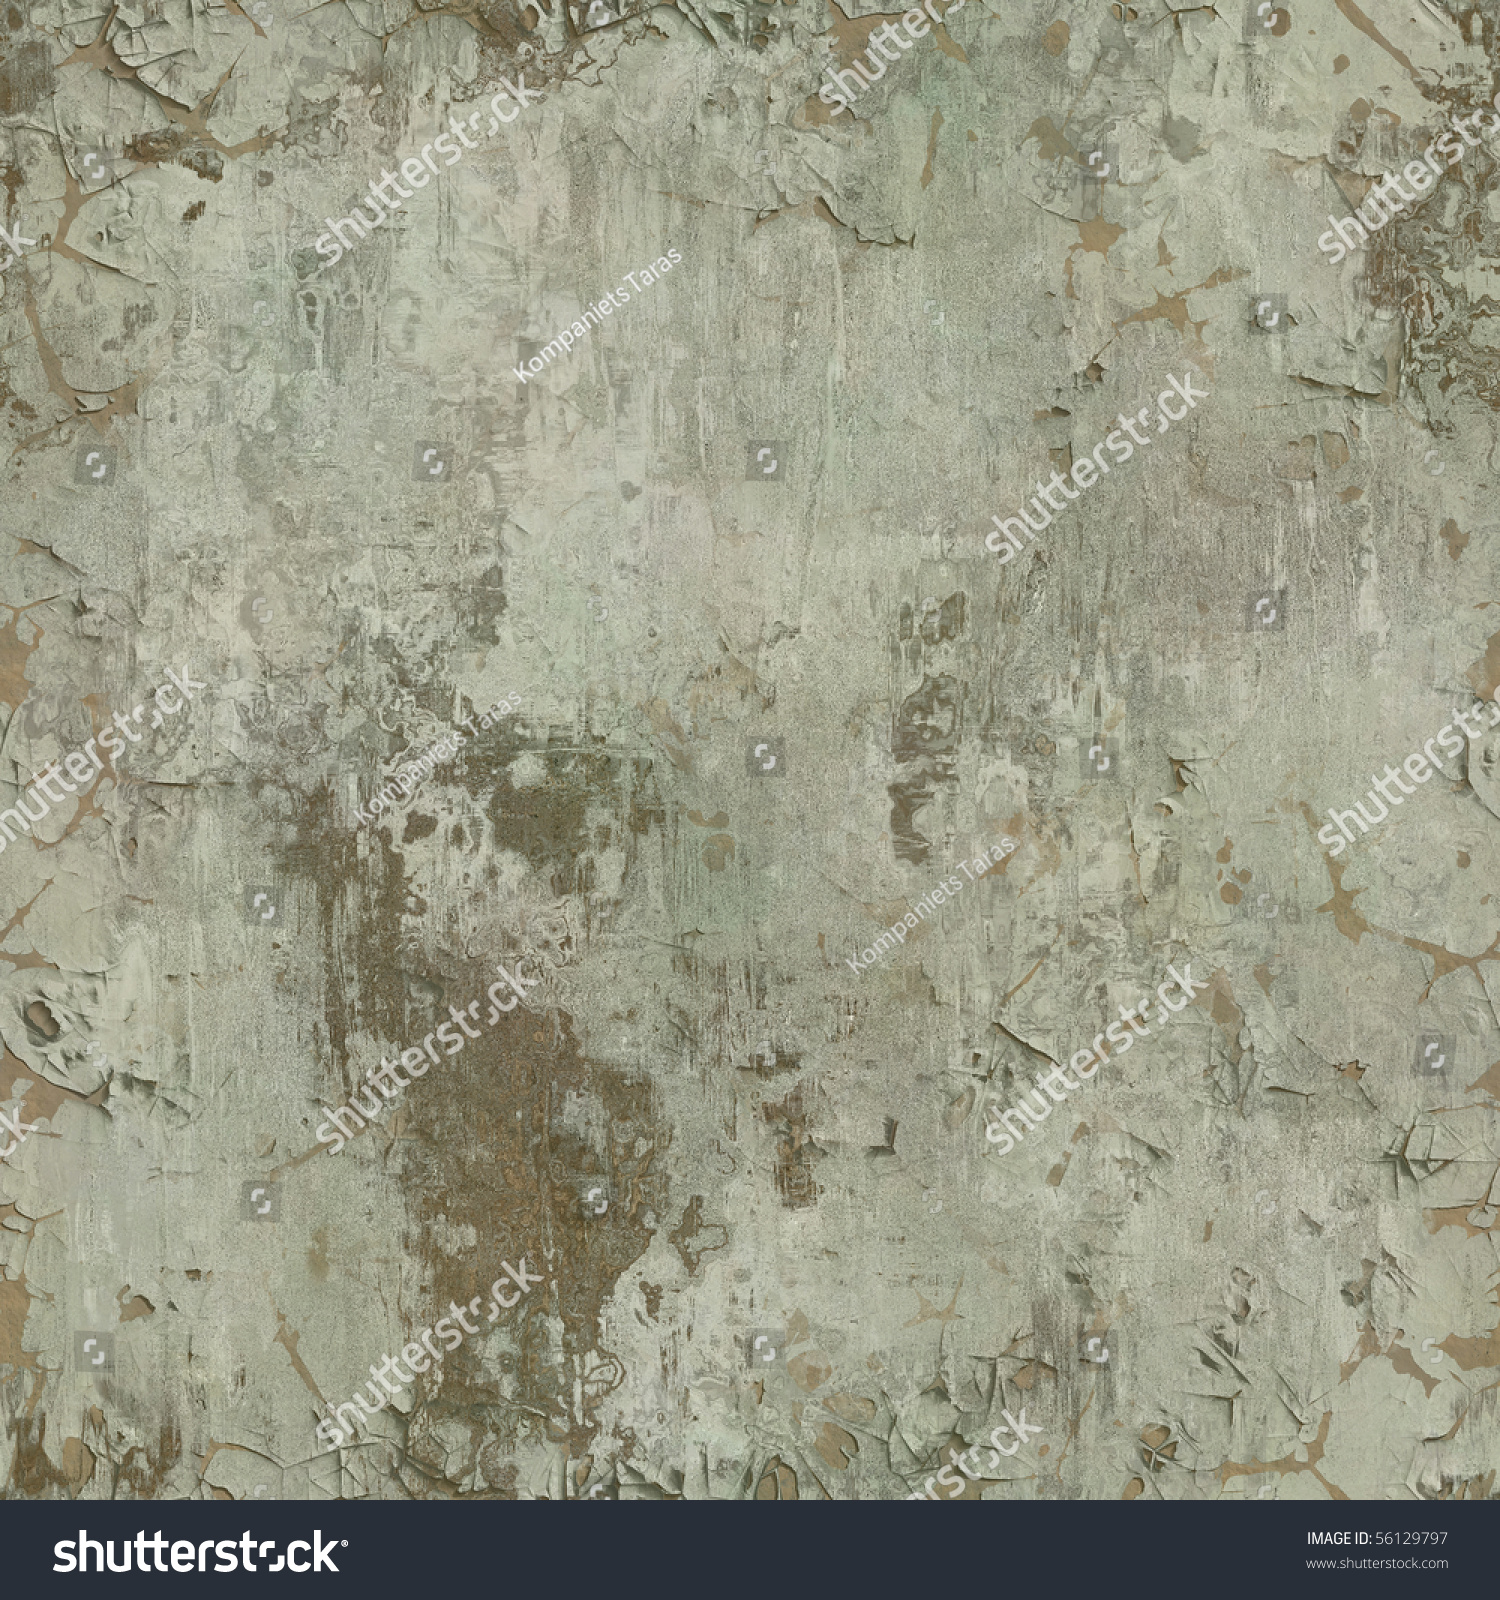 Wall paint texture seamless - Seamless Old Paint Peeling From Wall Texture Background